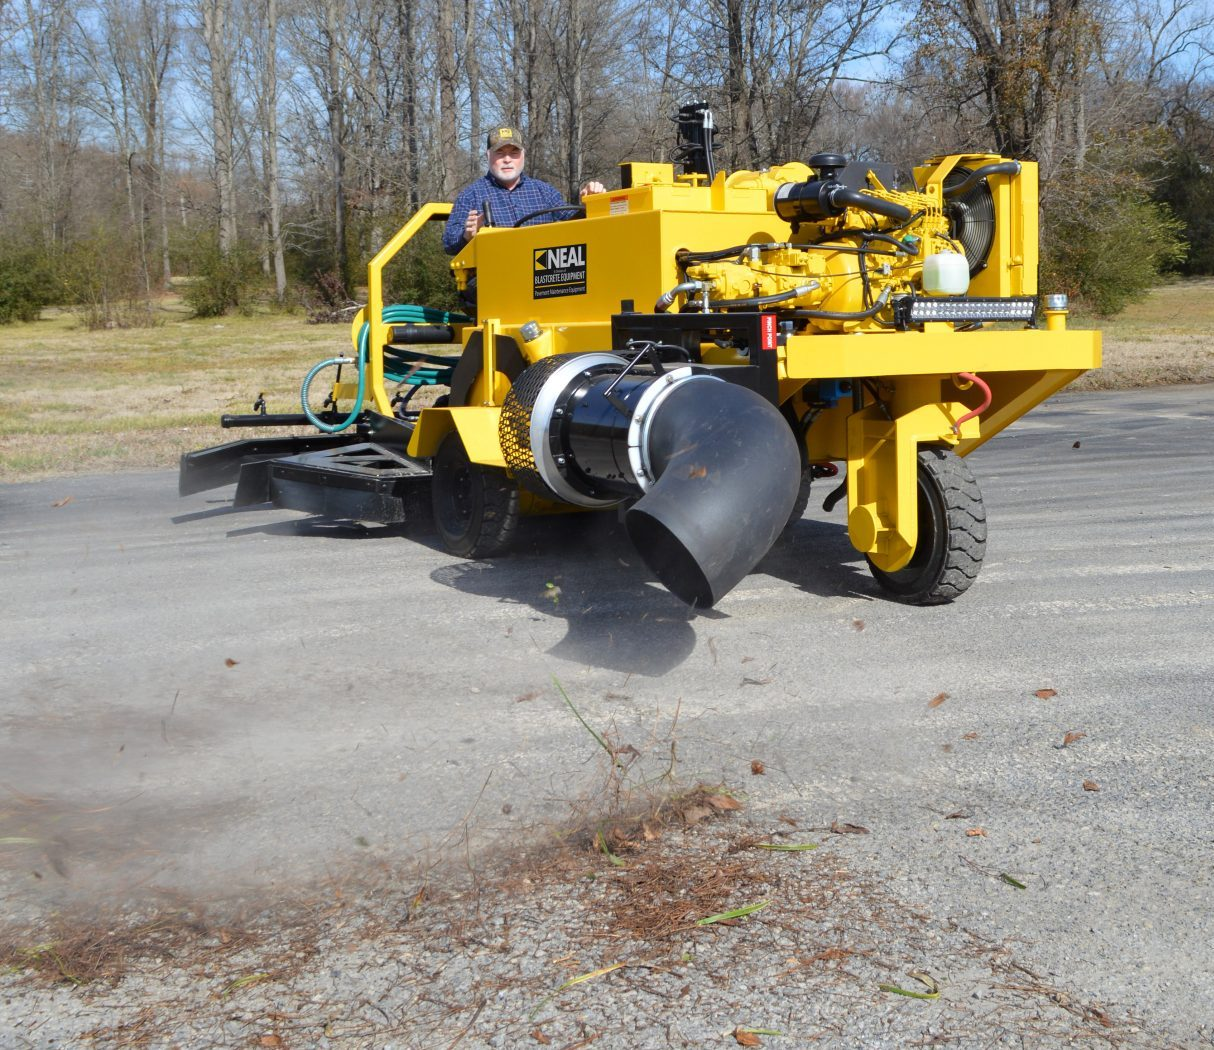 NEAL DA350 Ride-On Dual Sealcoat Applicator with Blower